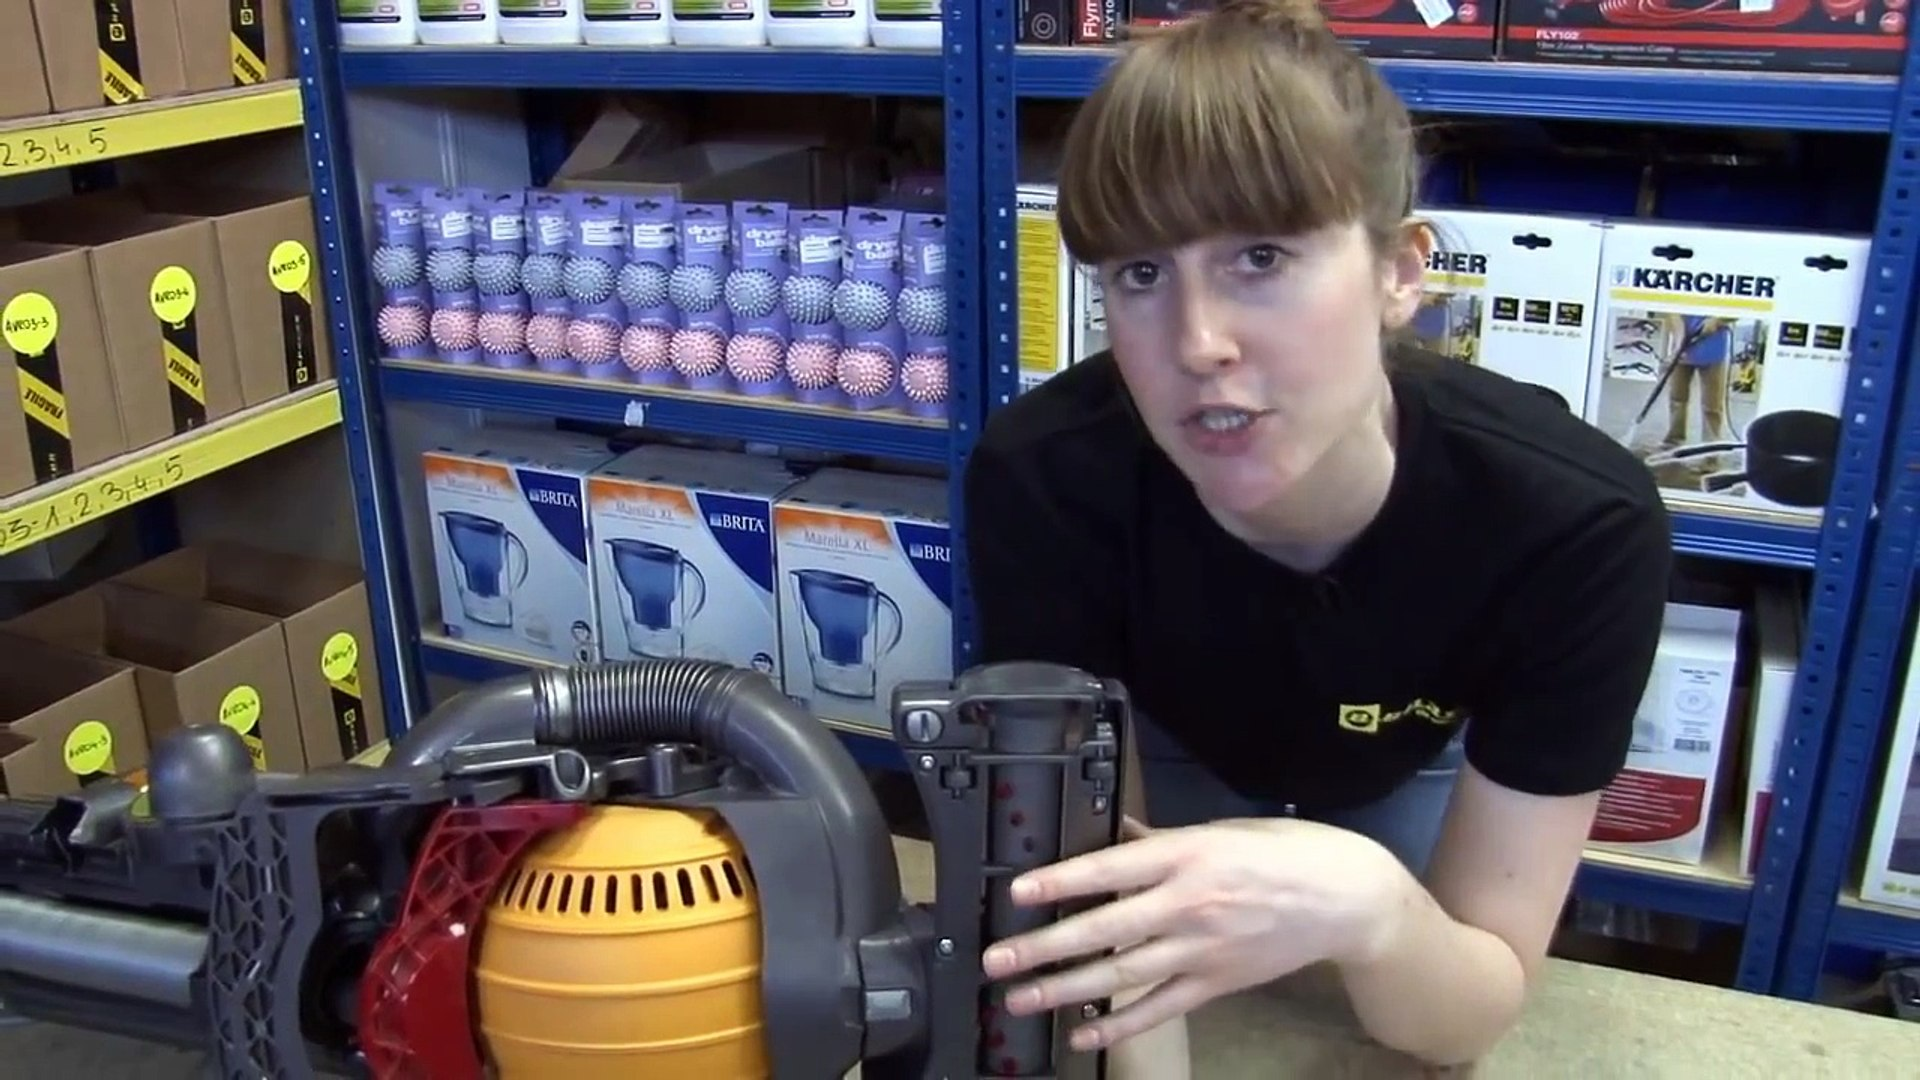 How To Replace The Dyson Belt On A Dyson Dc25 Vacuum Cleaner Video Dailymotion